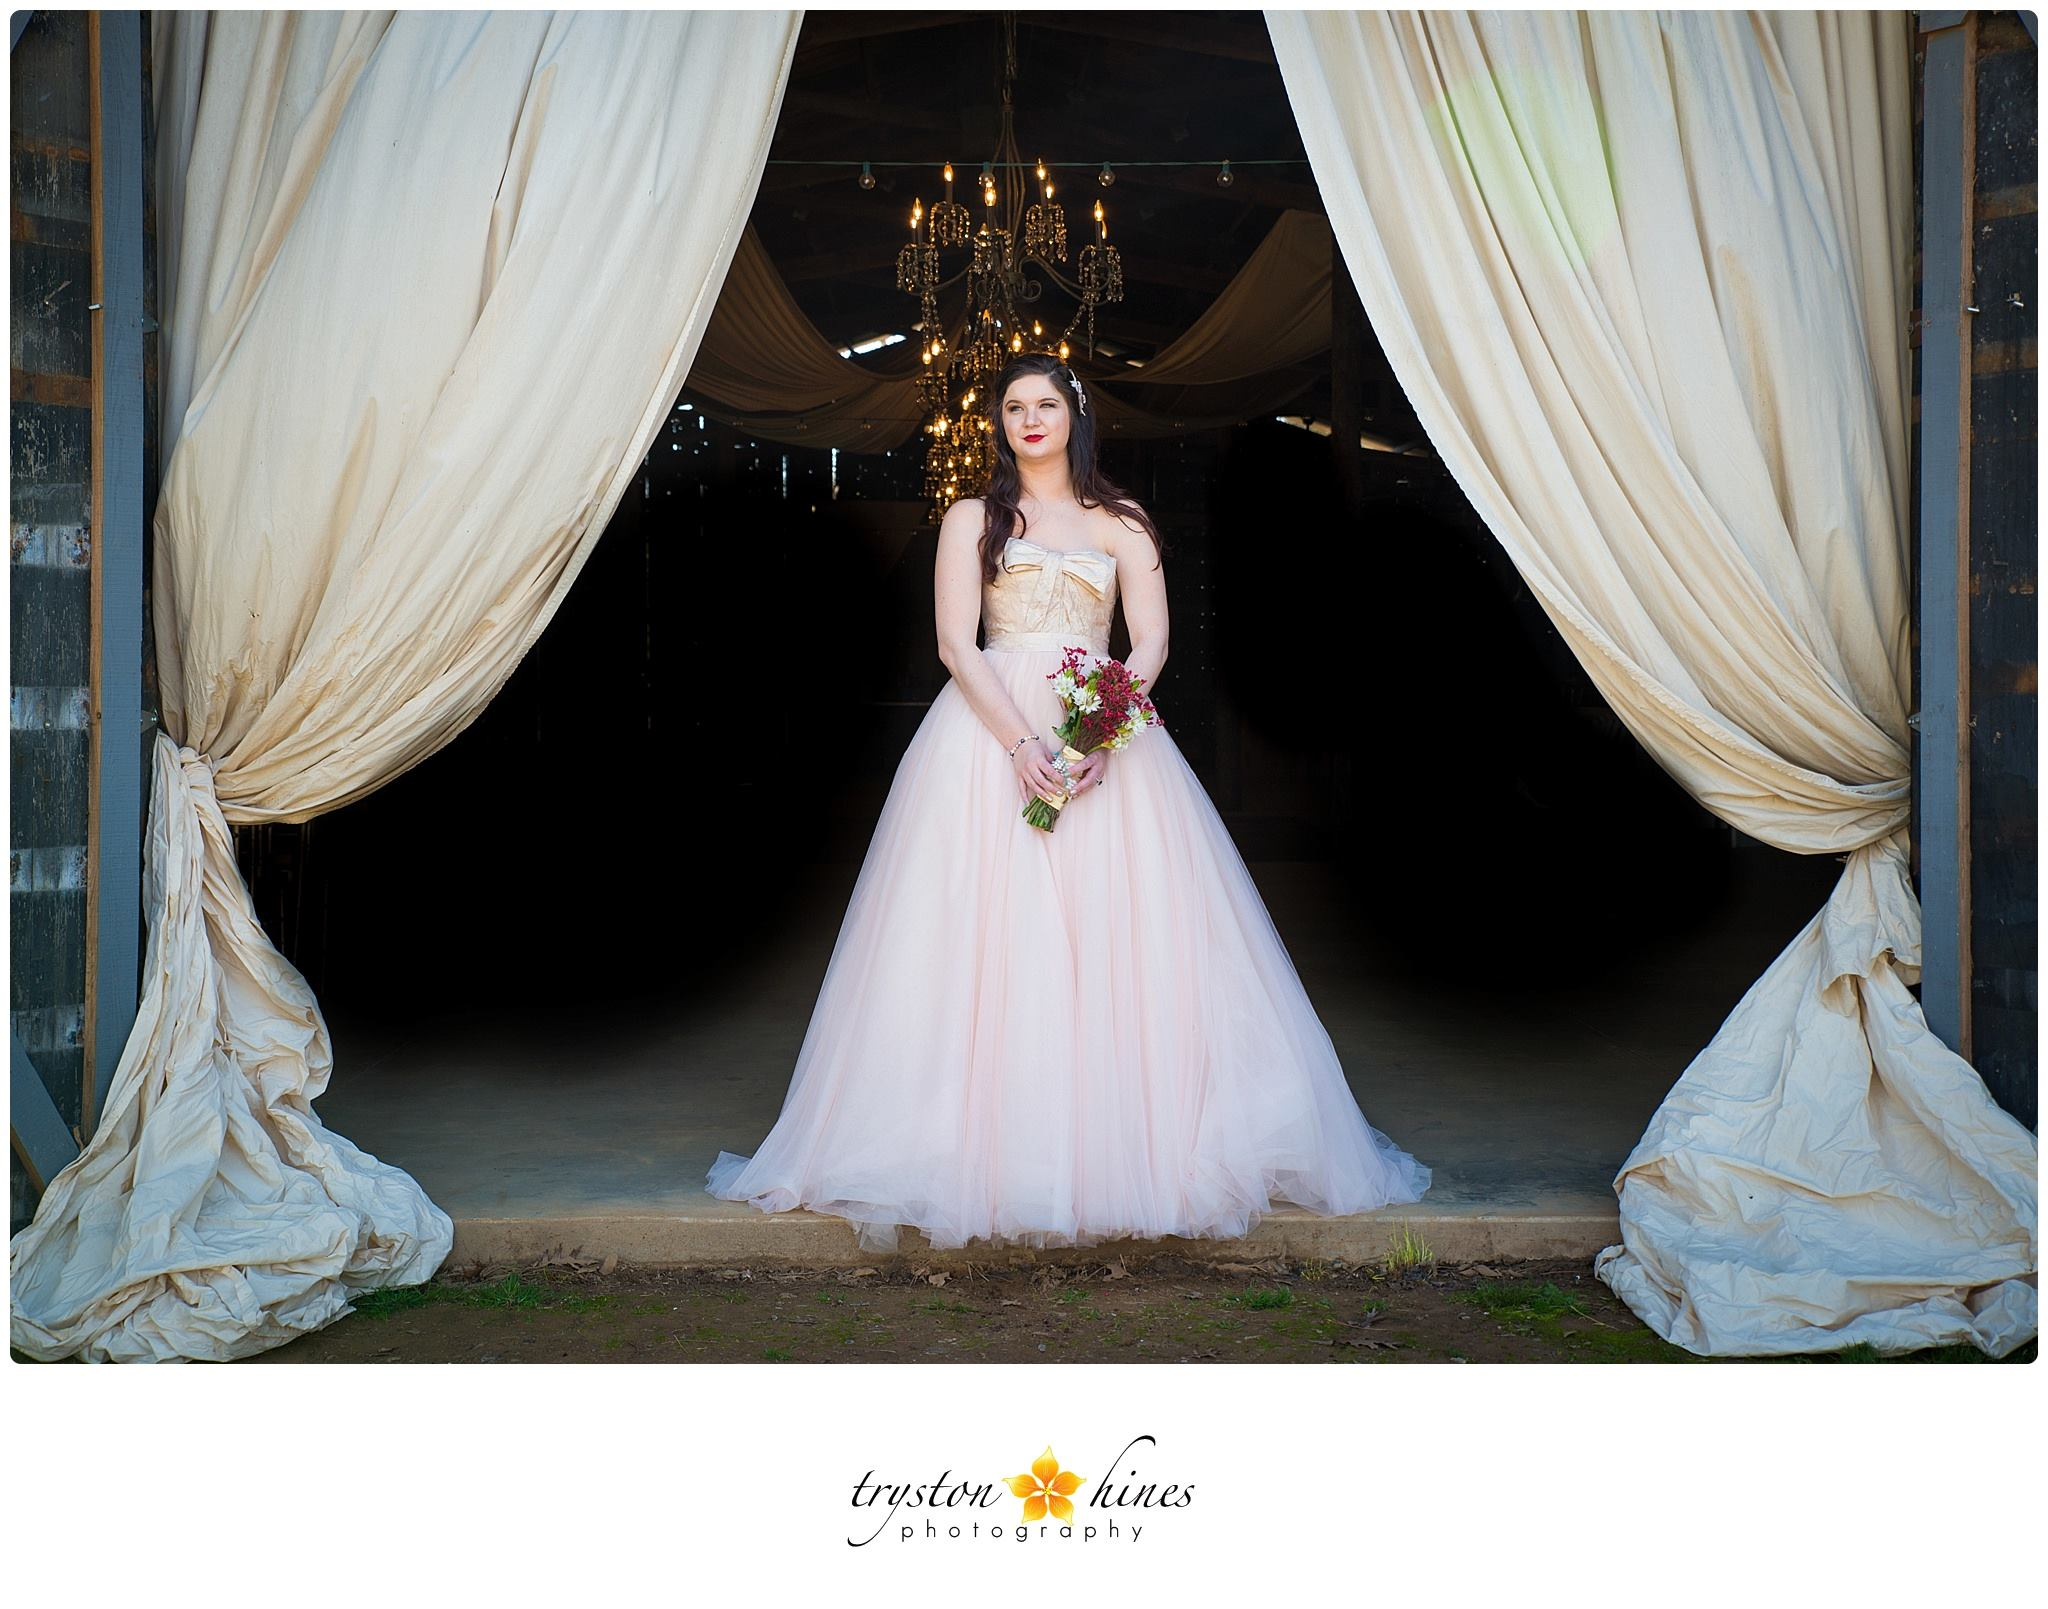 Tryston Hines Photography , from  Katie 's bridals. One of my favorite bridal sessions ever! Katie's stunning blush and ivory gown + the beautiful backdrop of The Barn... too much pretty to handle.